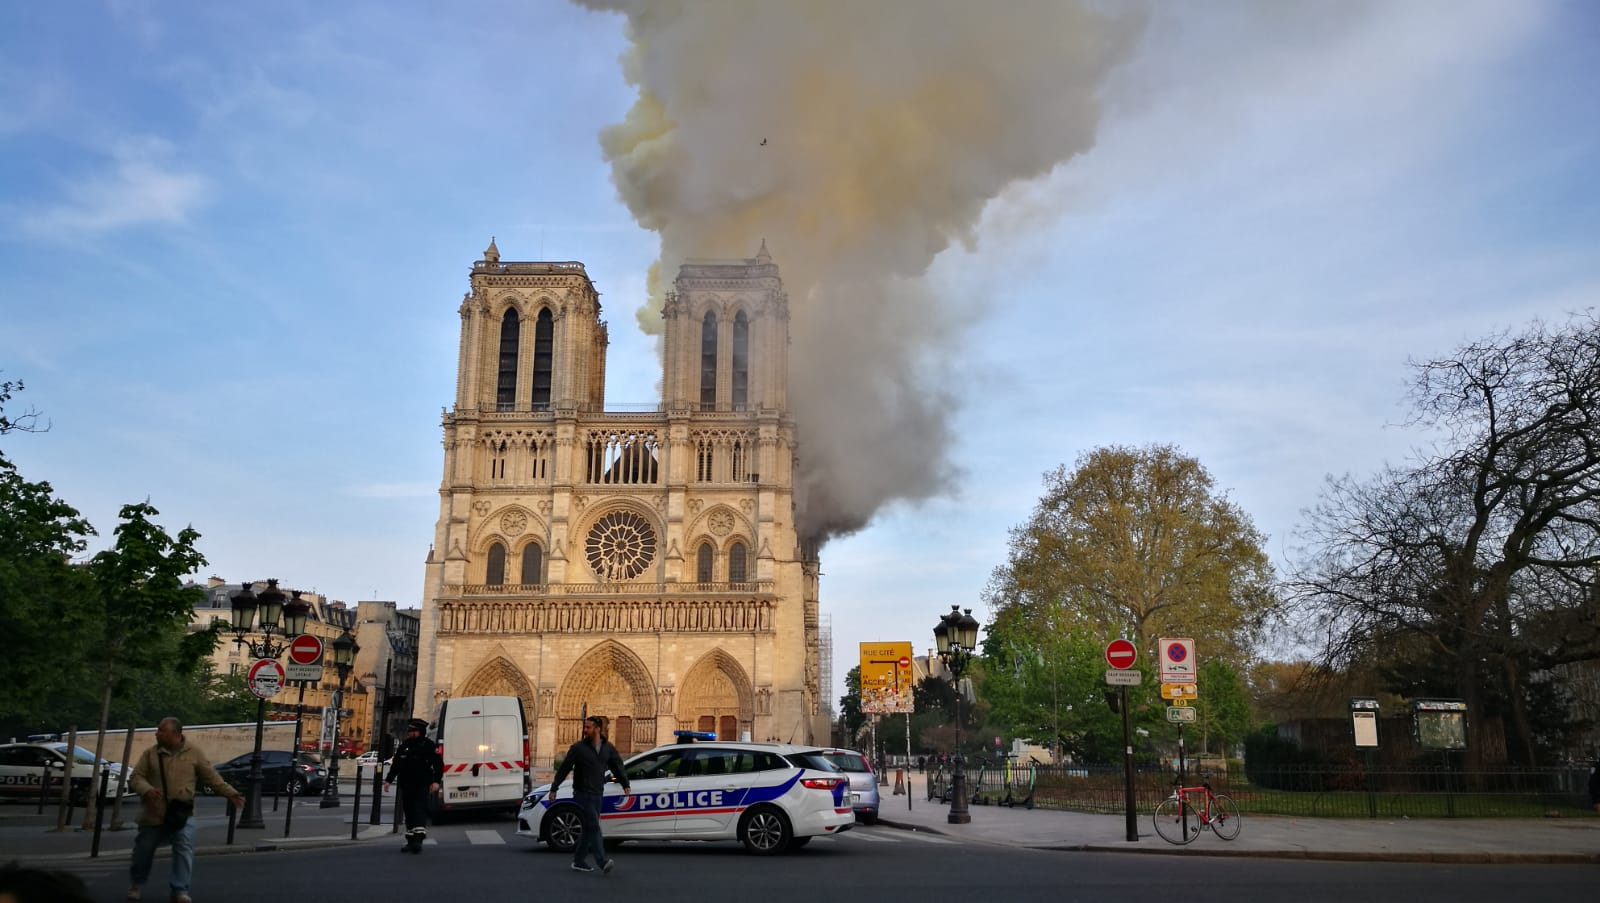 A fire at Notre Dame in Paris, 2019